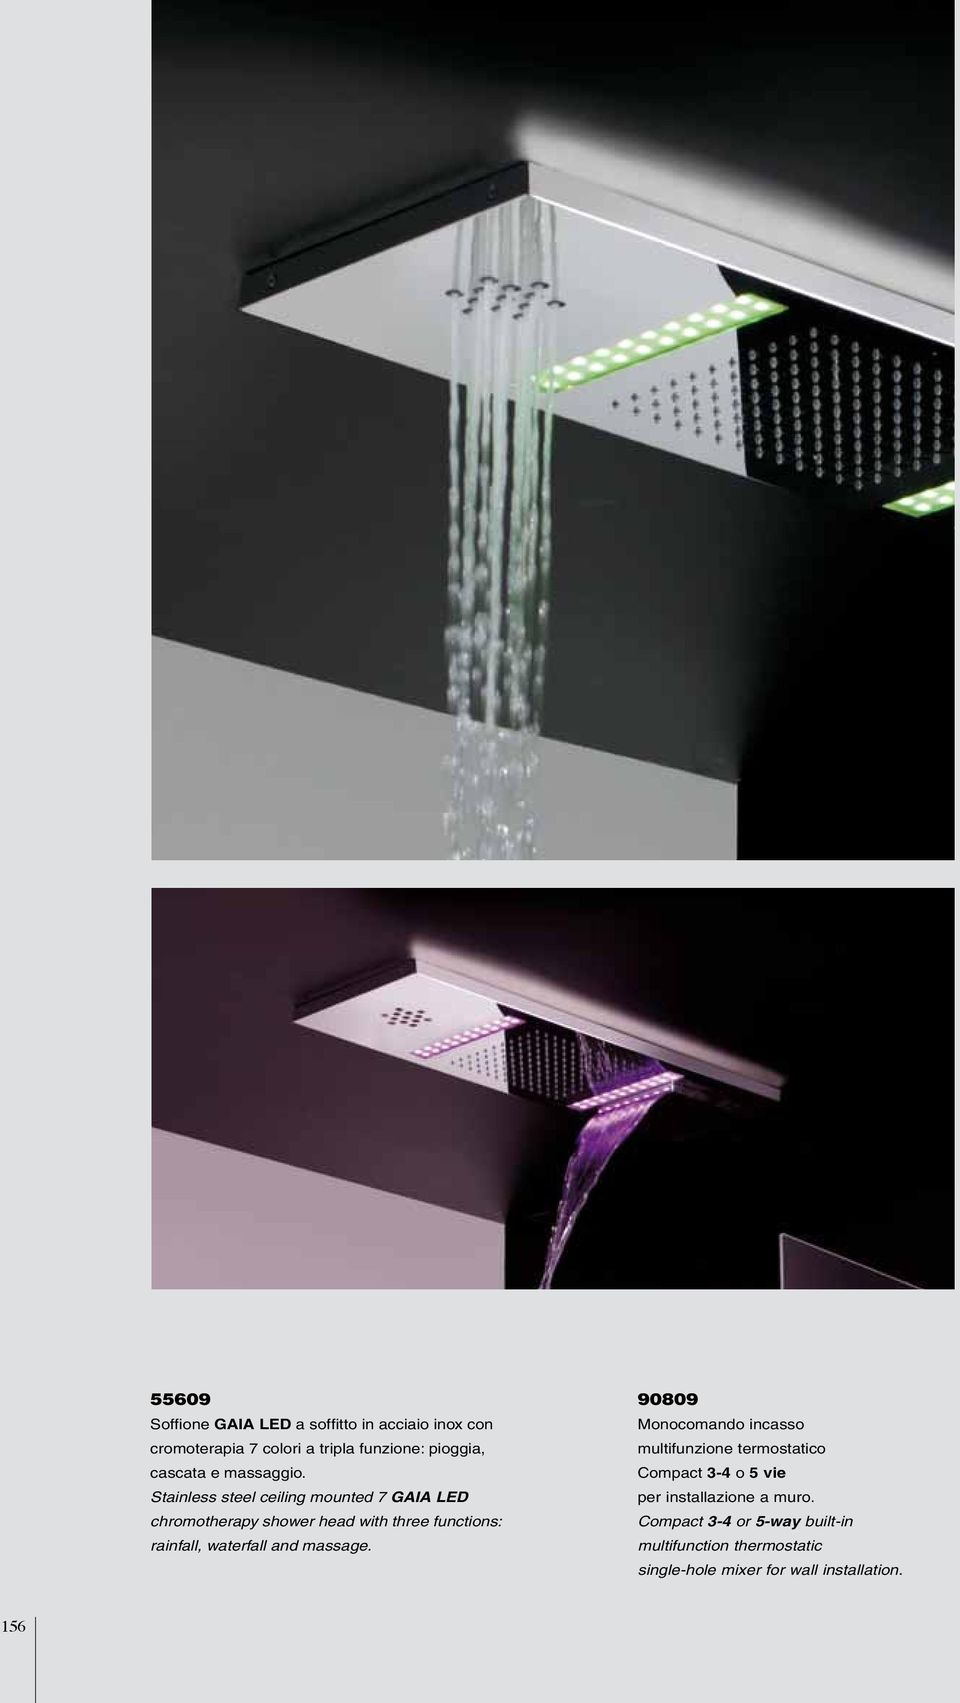 Stainless steel ceiling mounted 7 GAIA LED chromotherapy shower head with three functions: rainfall, waterfall